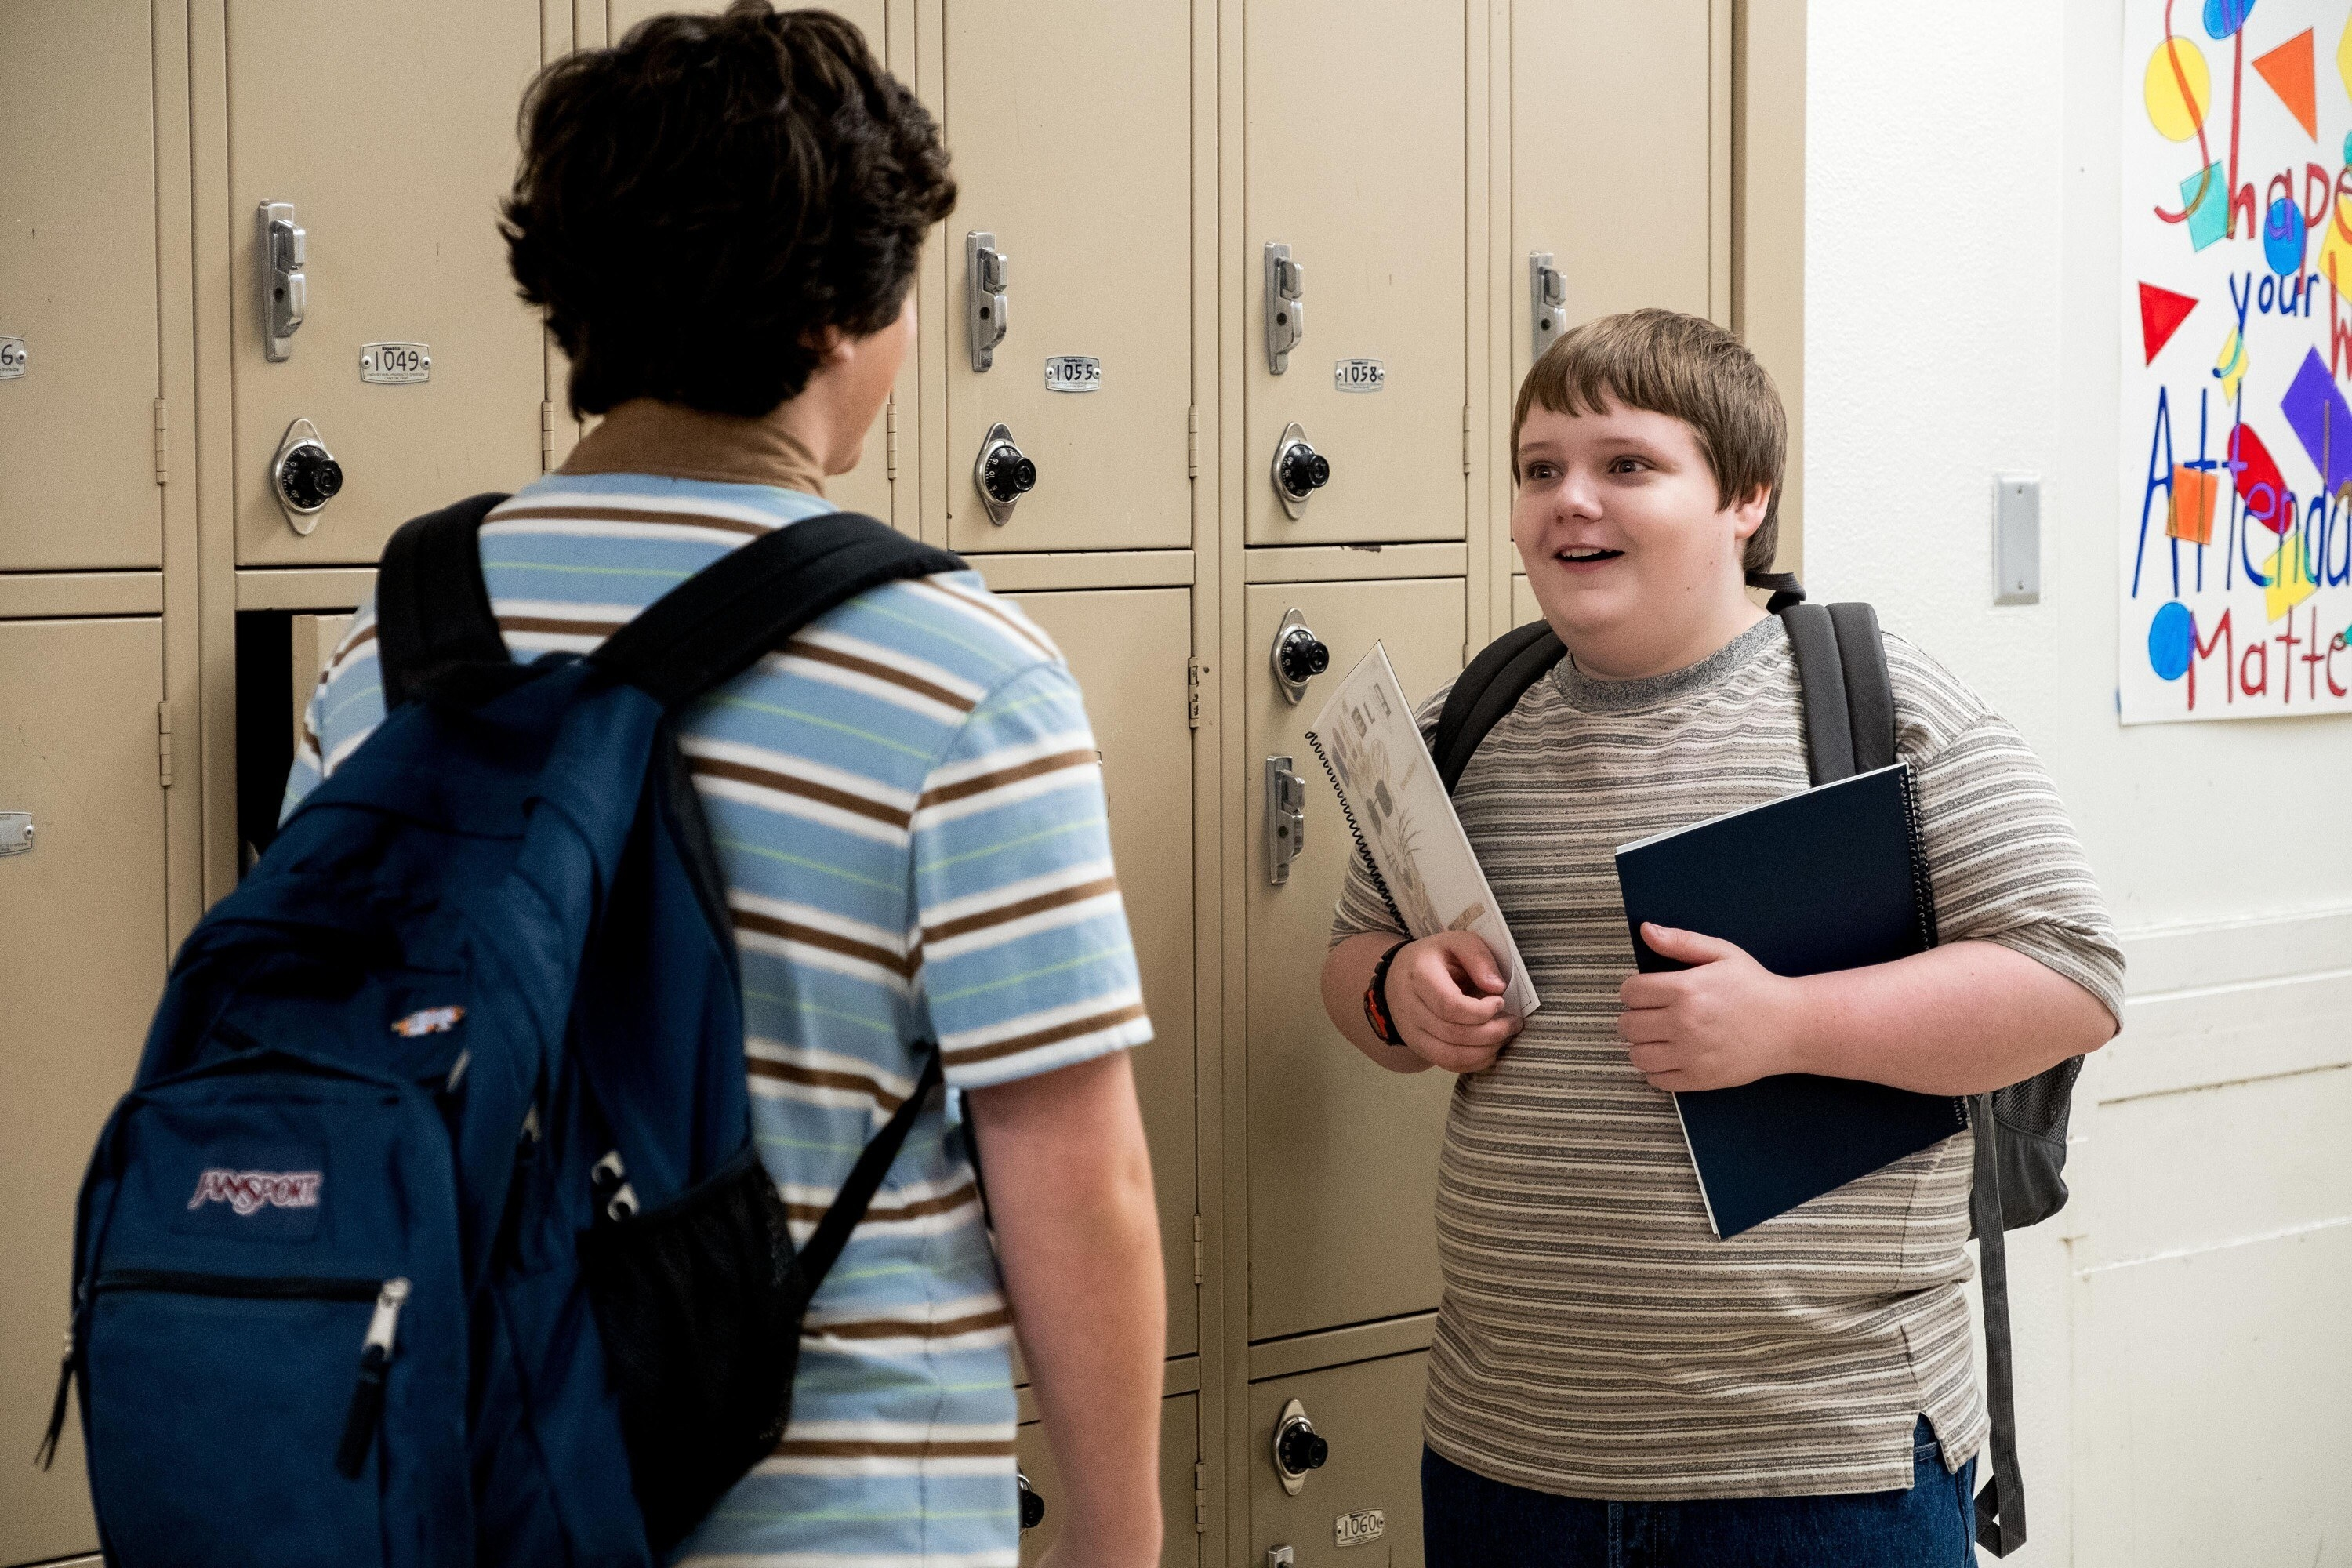 Taj Cross and Dylan Gage talk to each other next to their lockers